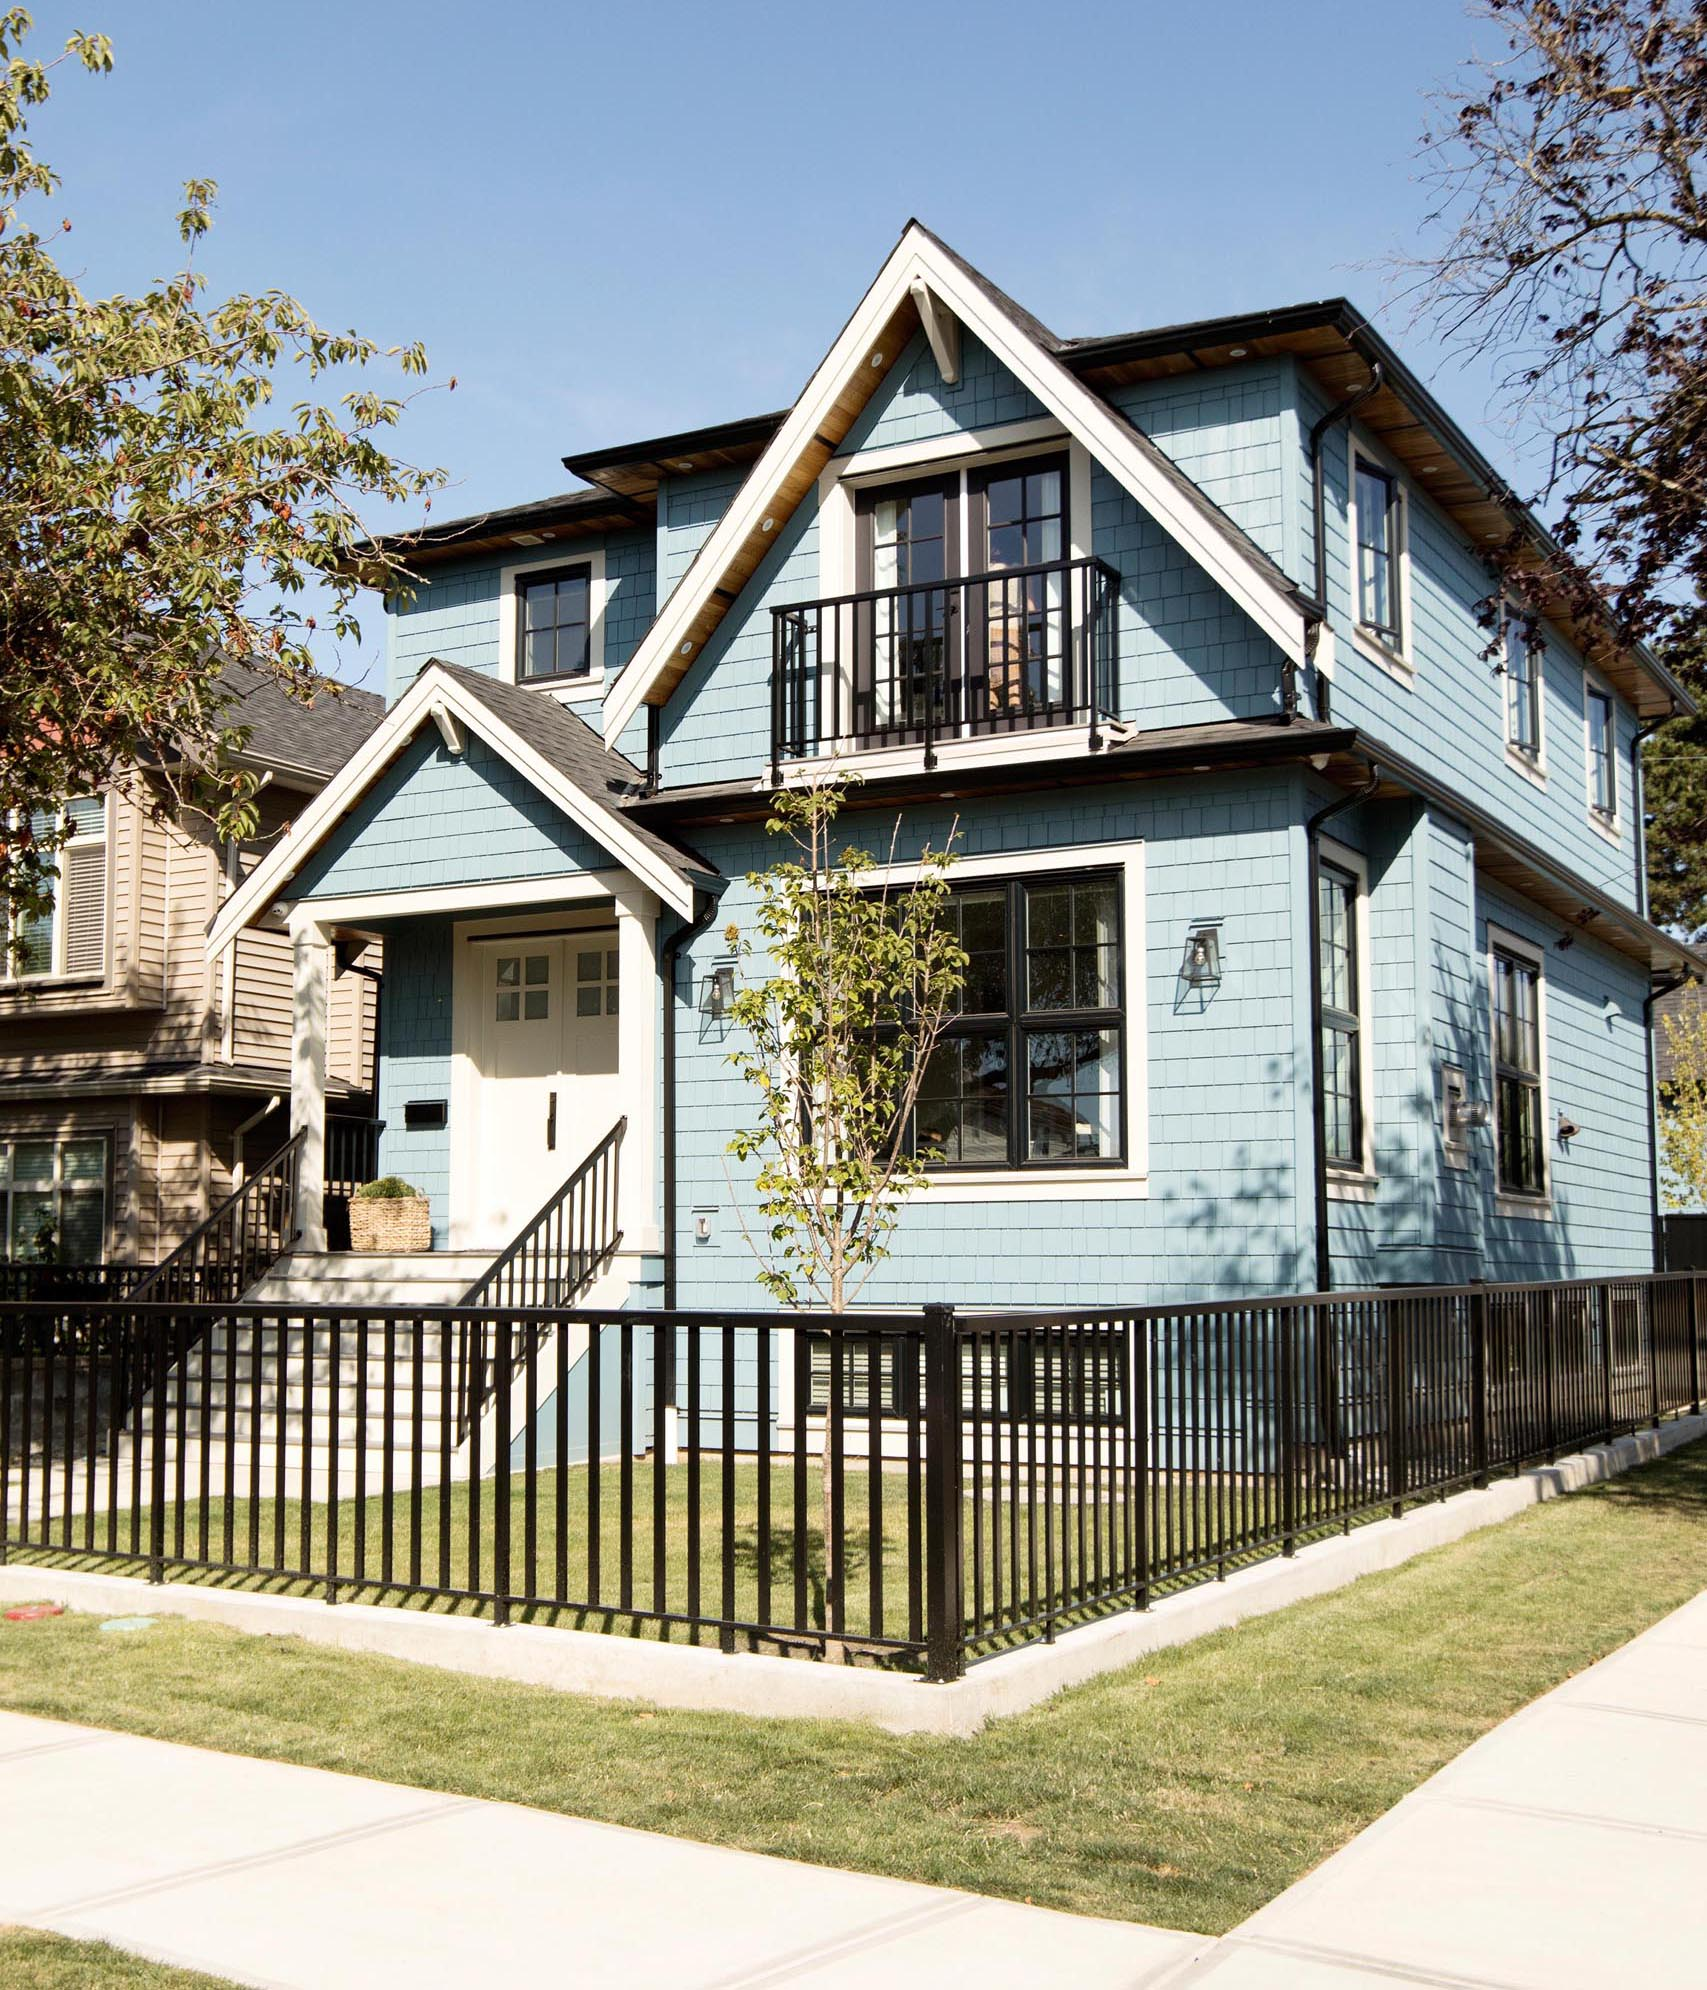 A contemporary light blue house with white trim and contrasting black fence, railings, and window frames.